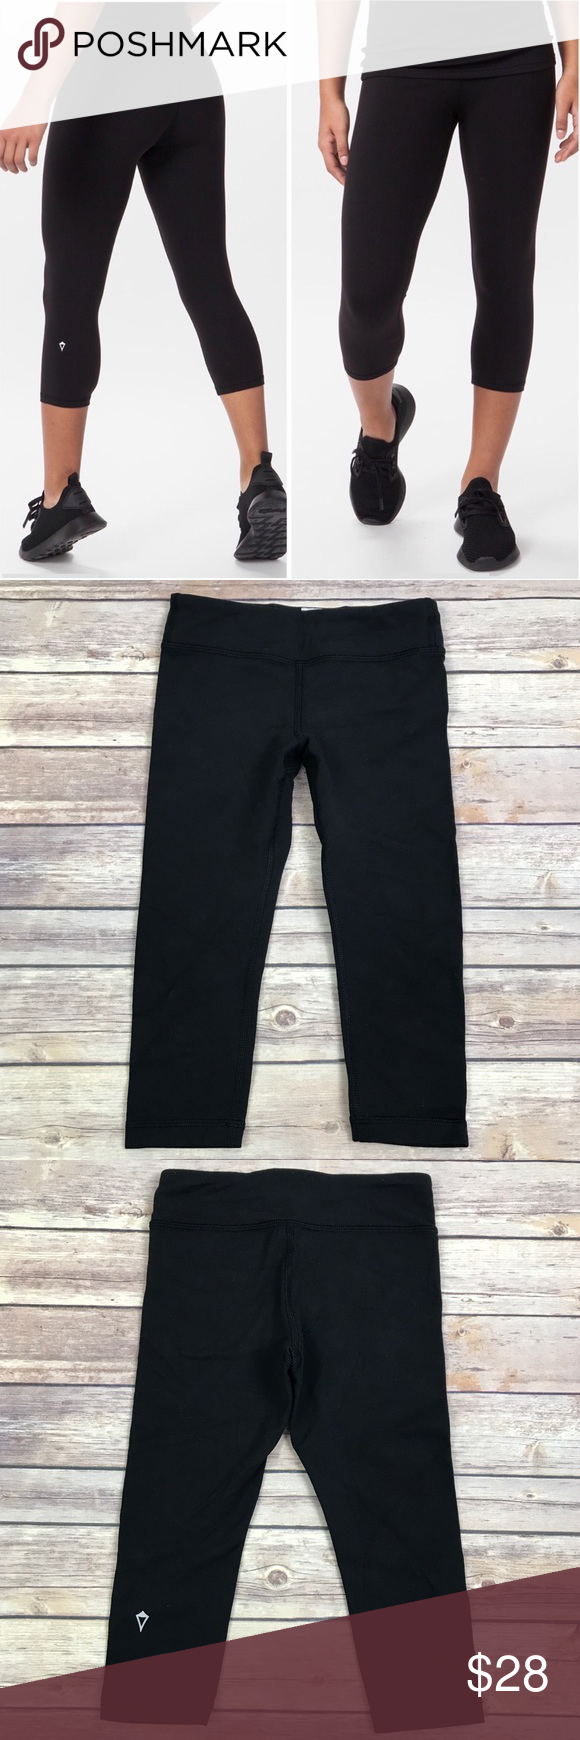 "edf879f98d76ac Ivivva Rhythmic Crop Black Leggings Girls 6 Ivivva Rhythmic Crop Black  Leggings Size: Girls 6 Inseam: 17"" Great condition! Ivivva Bottoms Leggings"